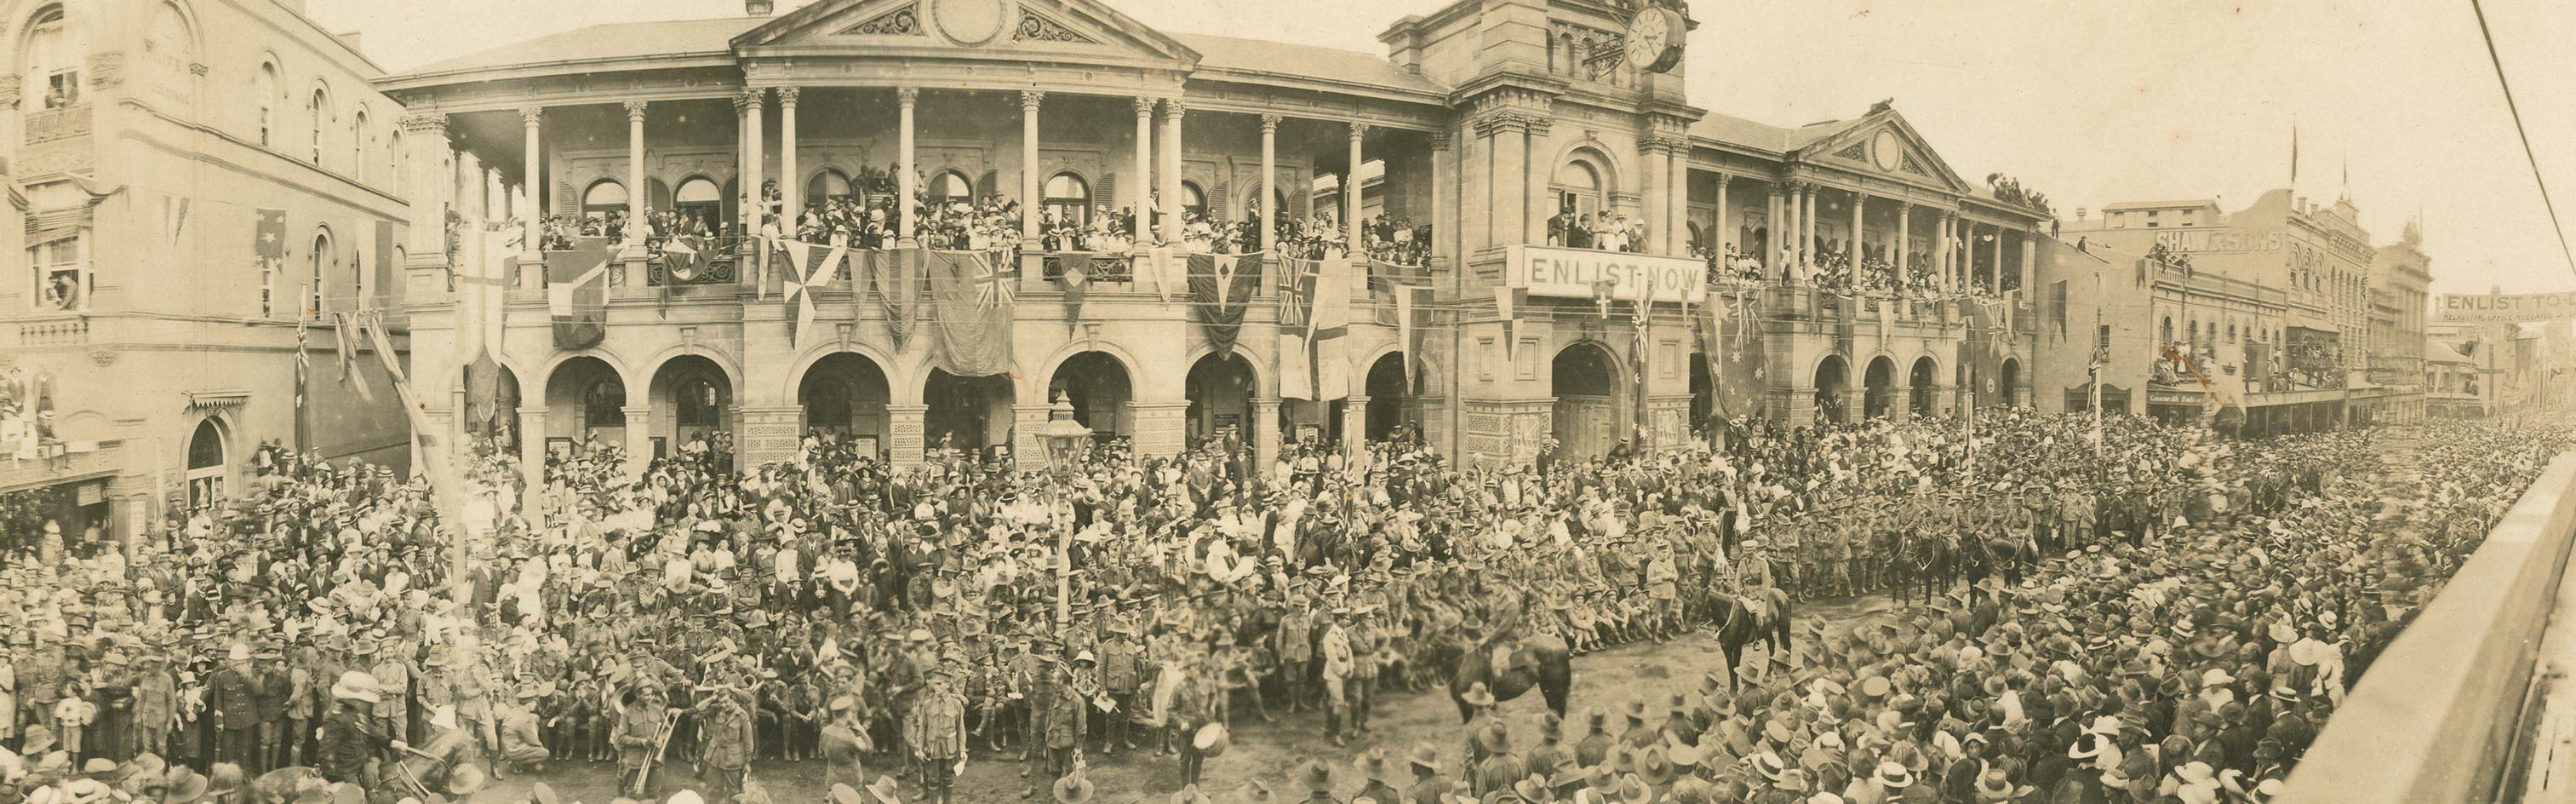 Photograph of Military parade in Brisbane celebrating the first anniversary of ANZAC Day, 1916